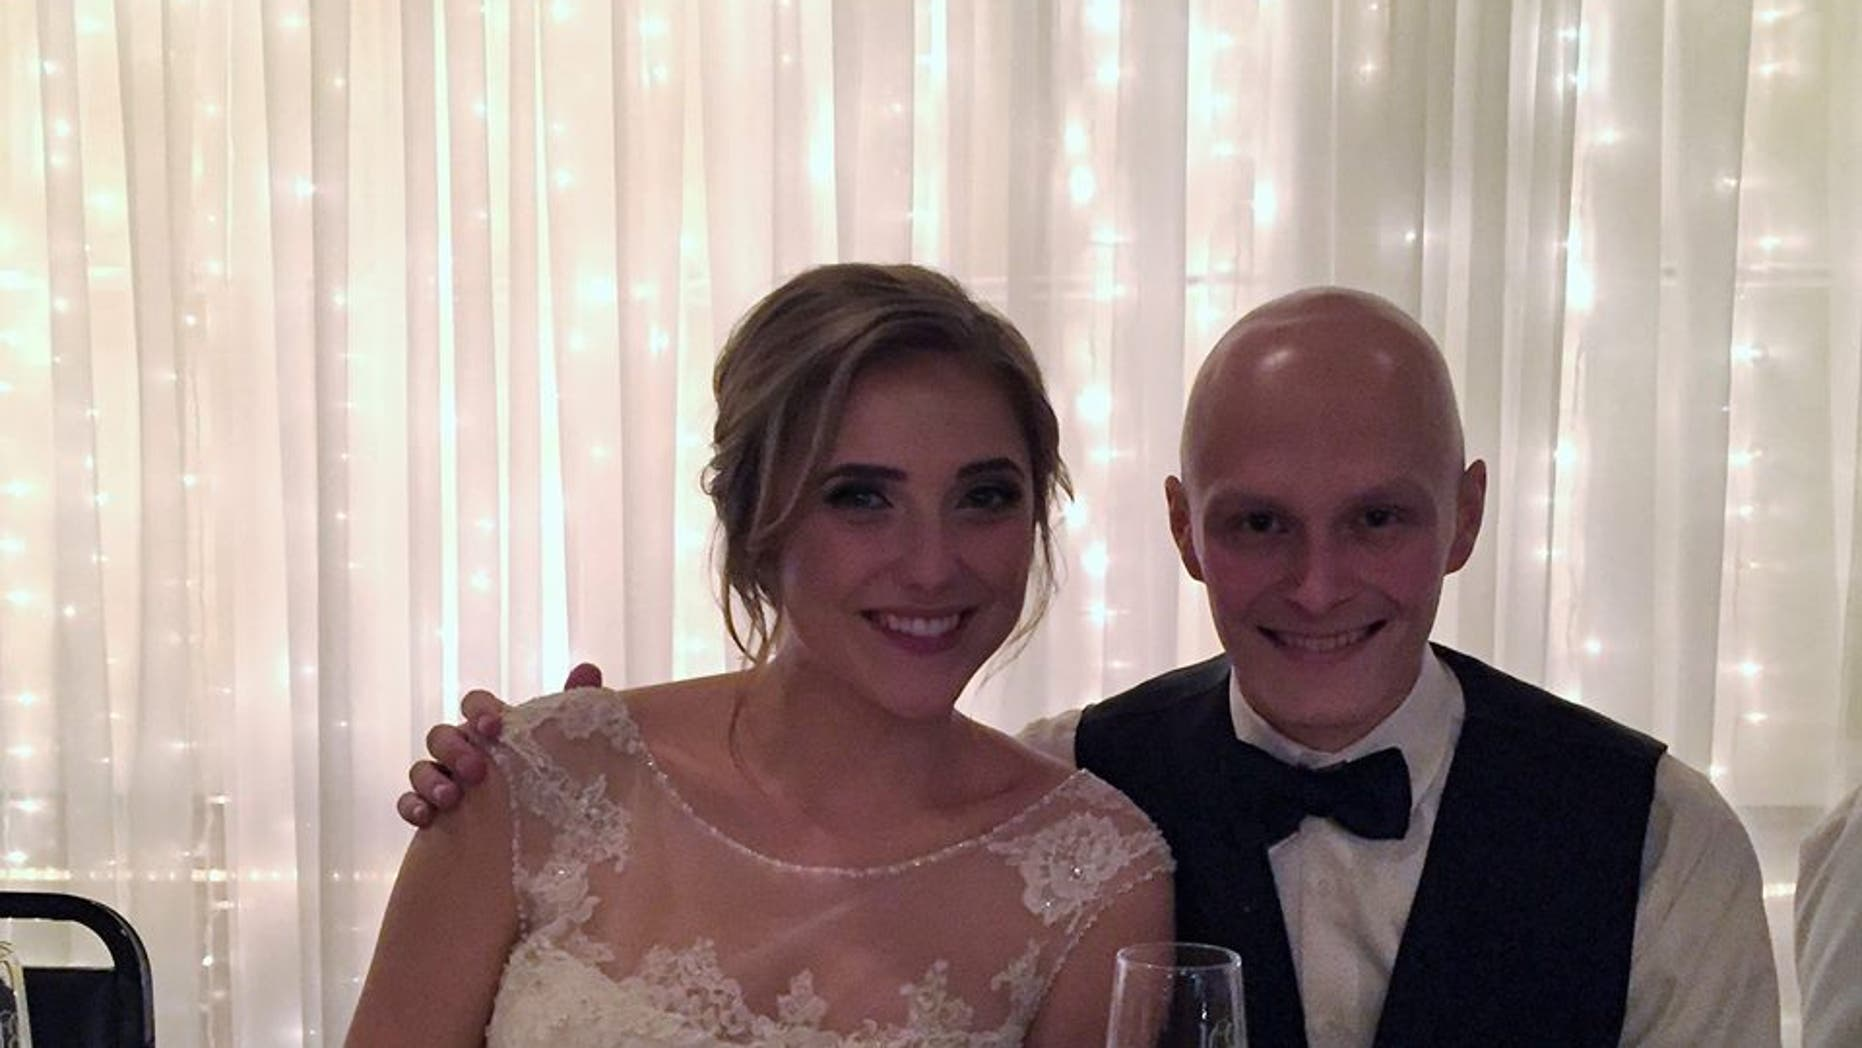 Luke Blanock and Natalie Britvich tied the knot a month after he found out his cancer was terminal.